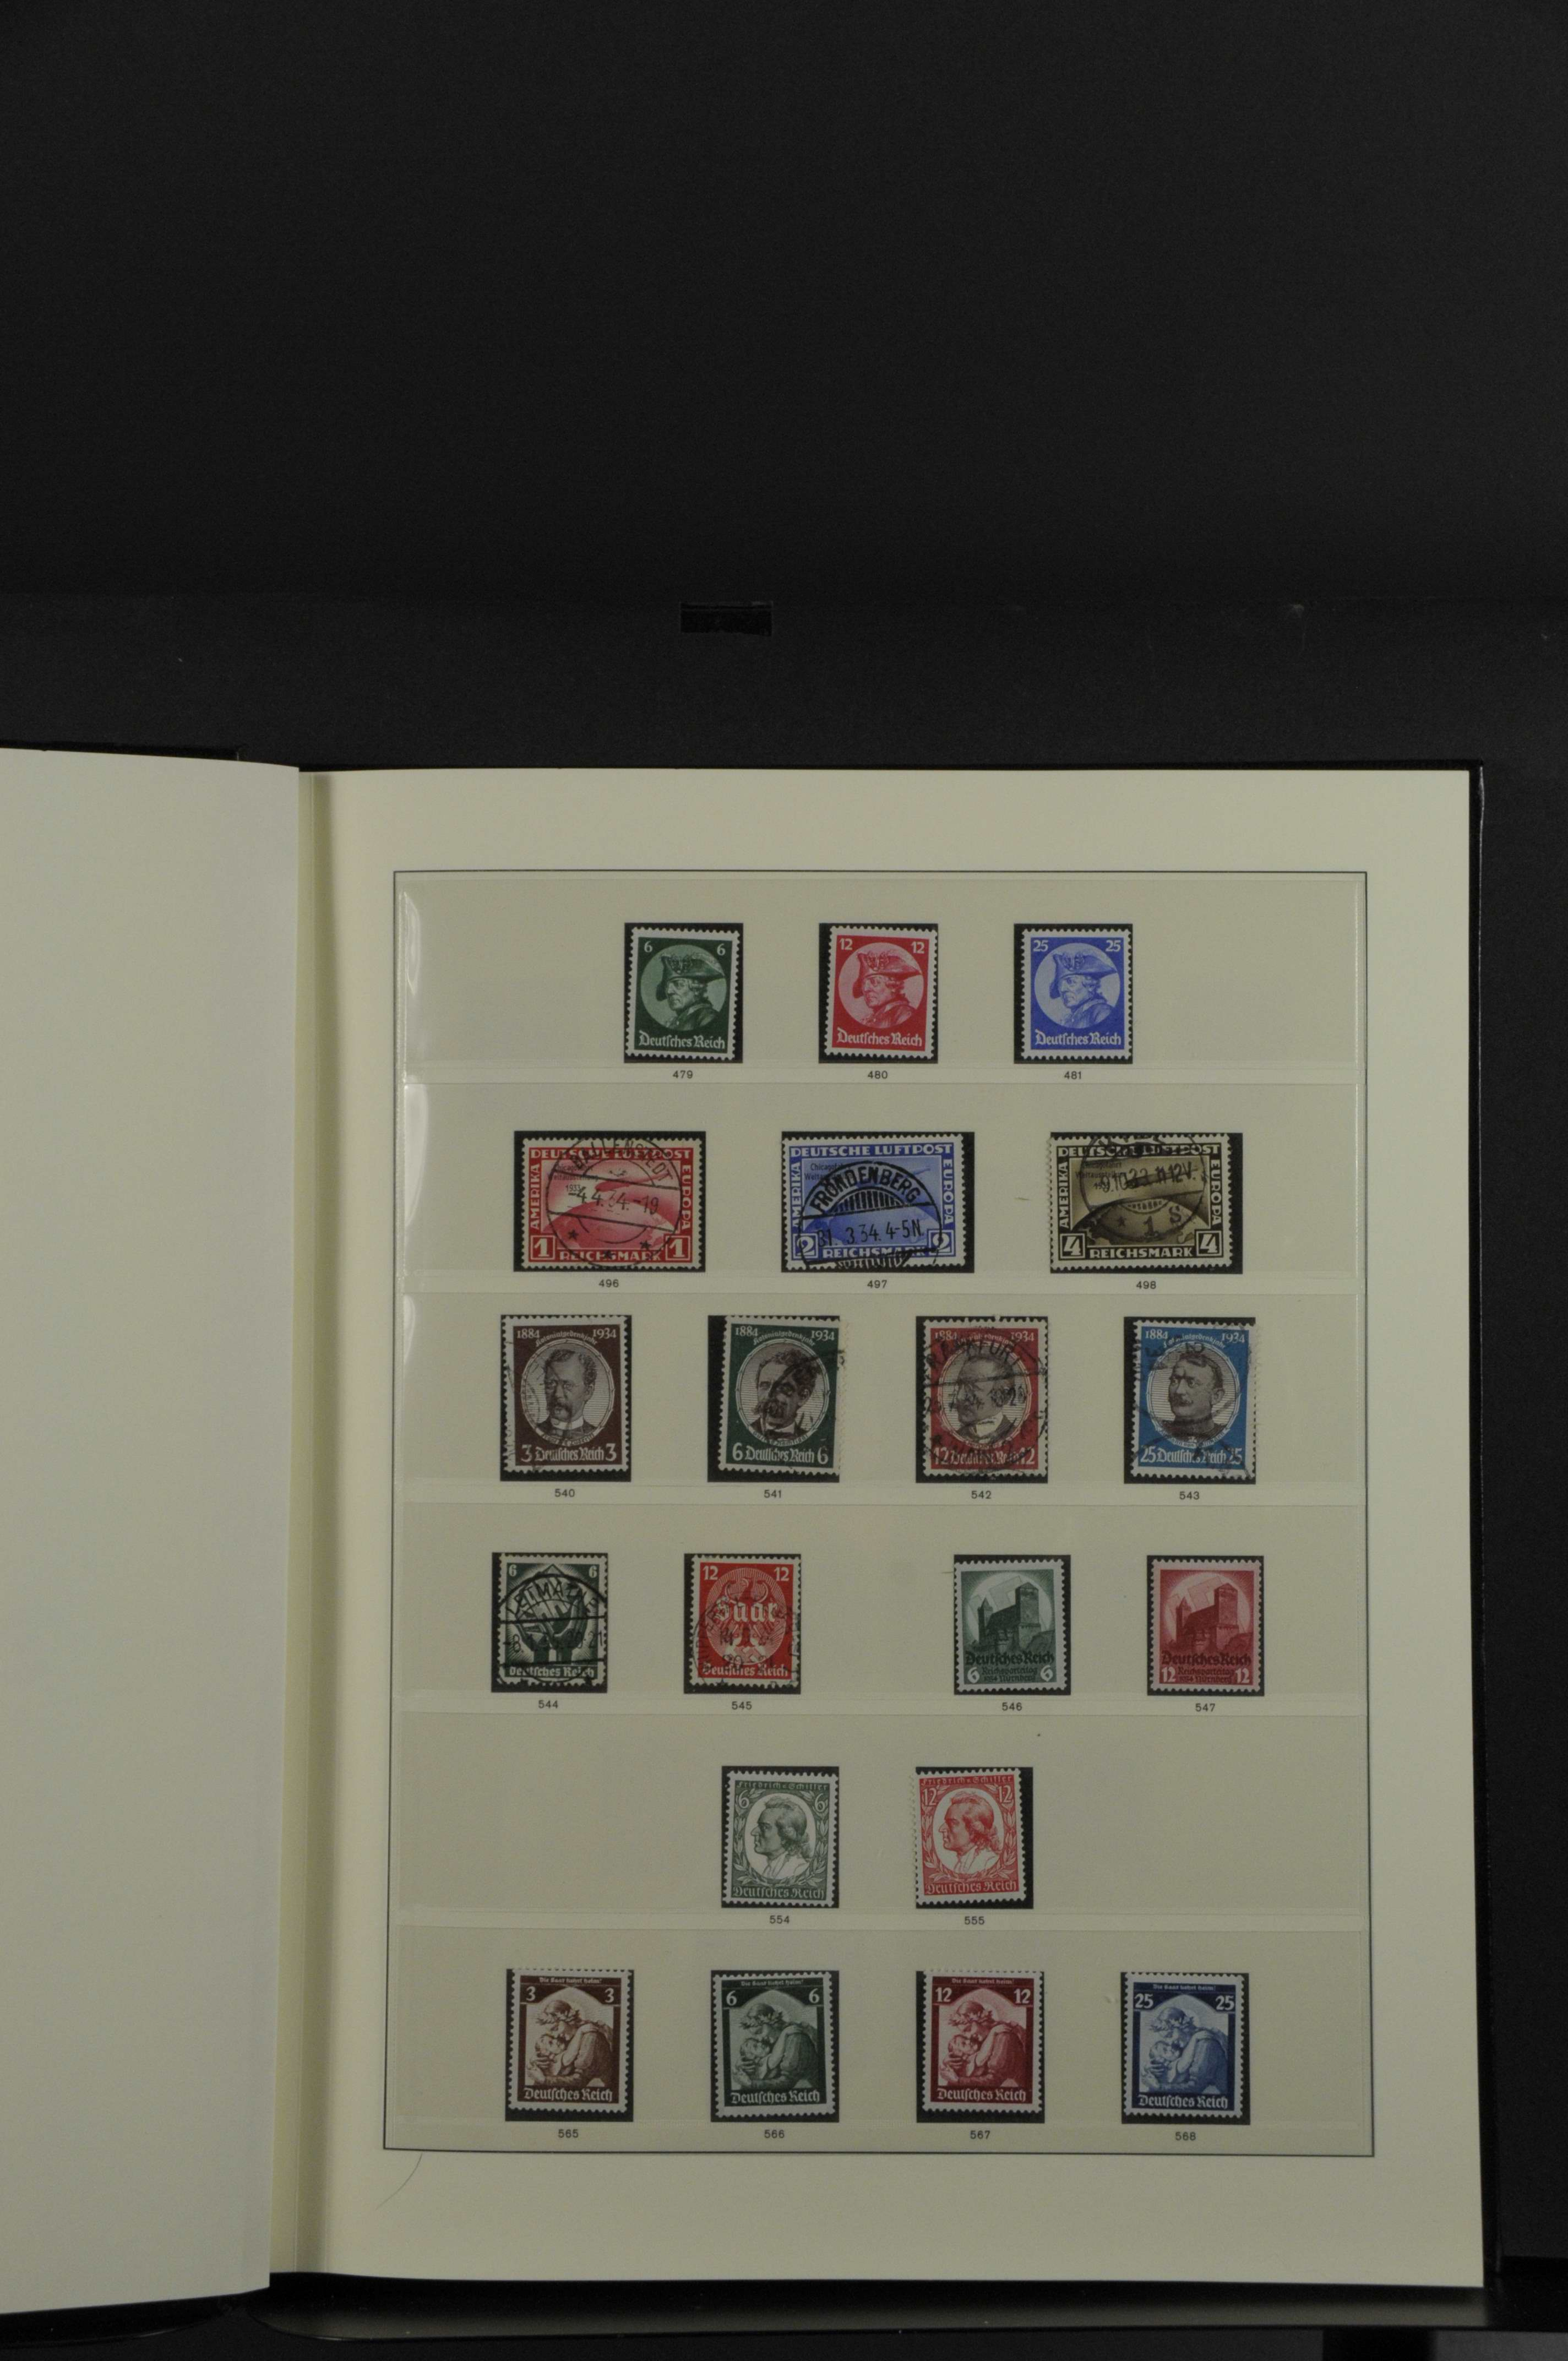 Lot 7932 - Deutsches Reich drittes reich -  Auktionshaus Ulrich Felzmann GmbH & Co. KG Auction 165   Philately, Airmail, Zeppelinmail and Astrophilately, international,  German and collections.